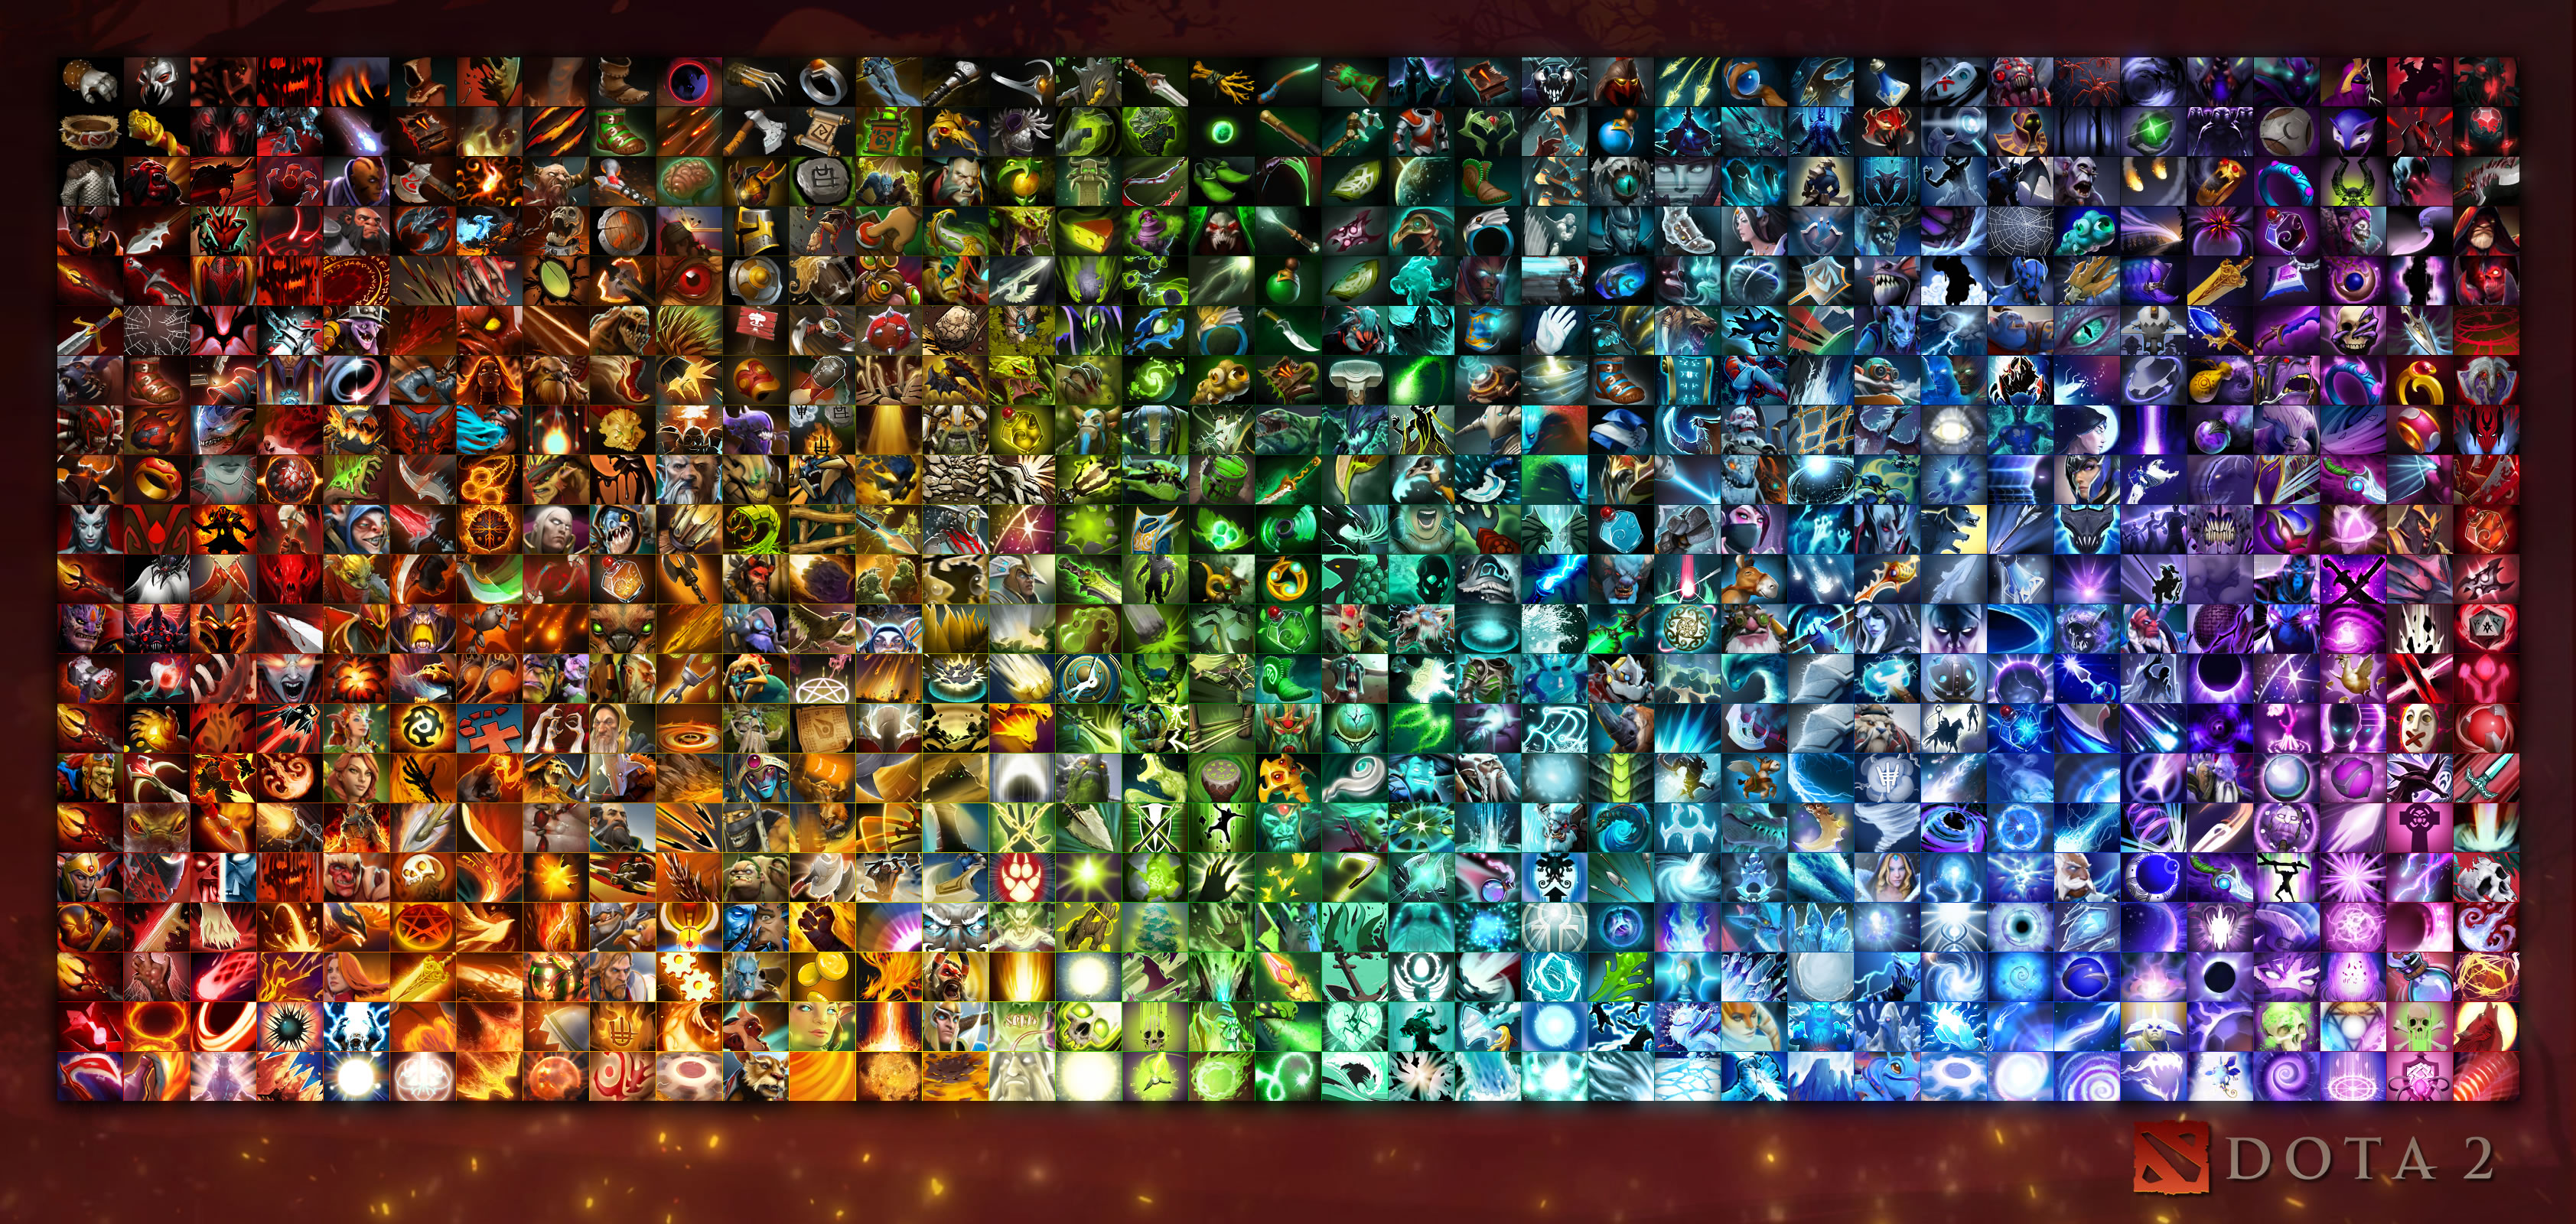 steam workshop gradients of dota poster of all heroes